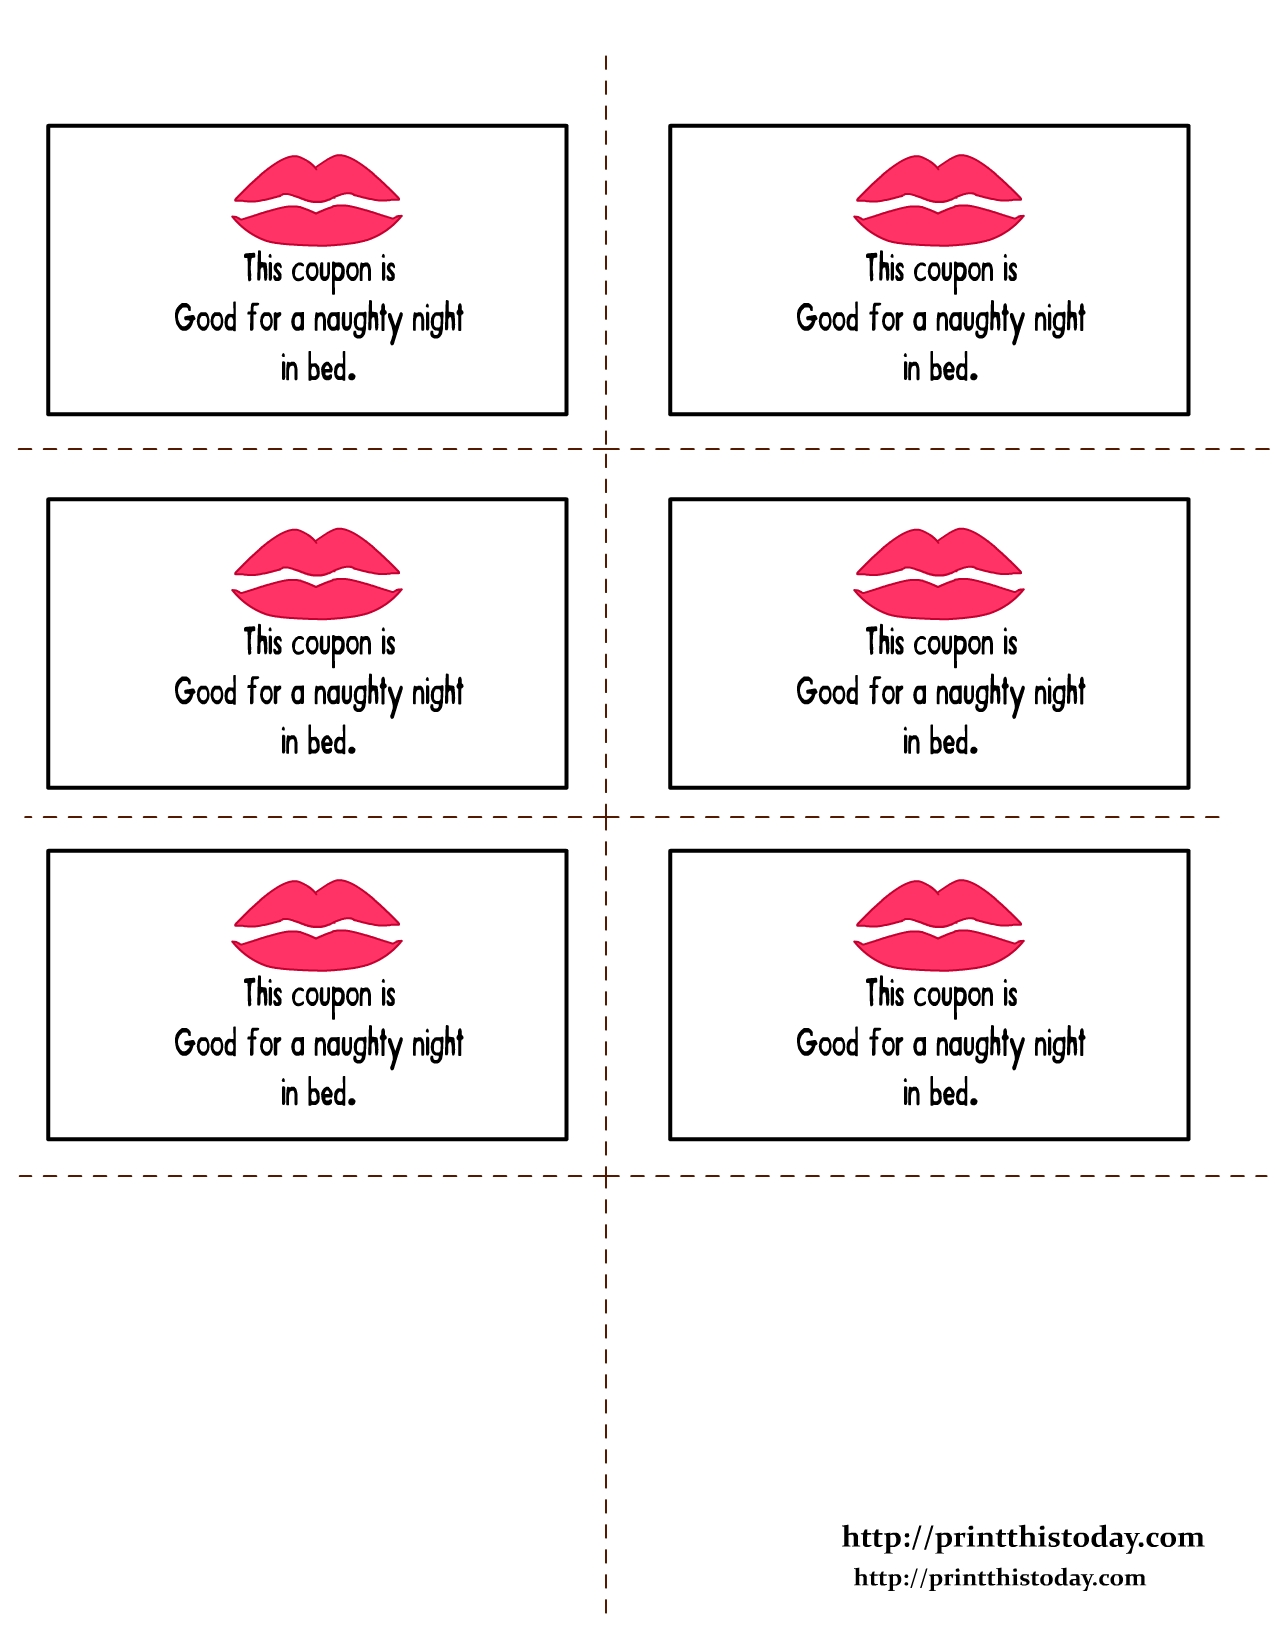 10 Beautiful Naughty Coupon Ideas For Boyfriend romantic love coupon printable romantic love coupons print this 2020